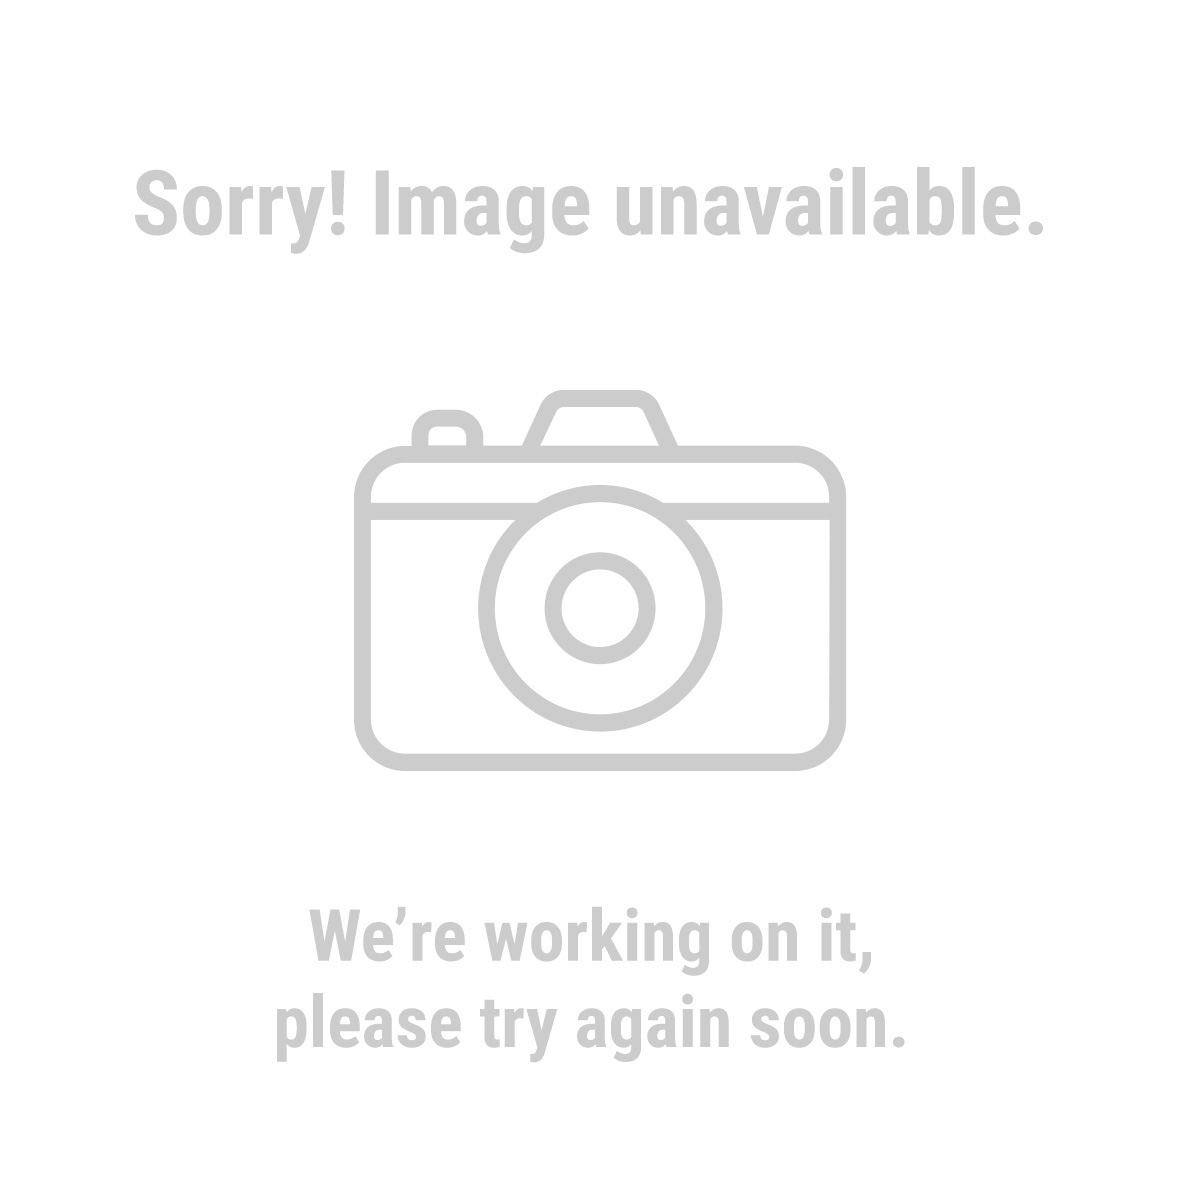 Pittsburgh Automotive 60345 1100 Lb. Electric Hoist with Remote Control